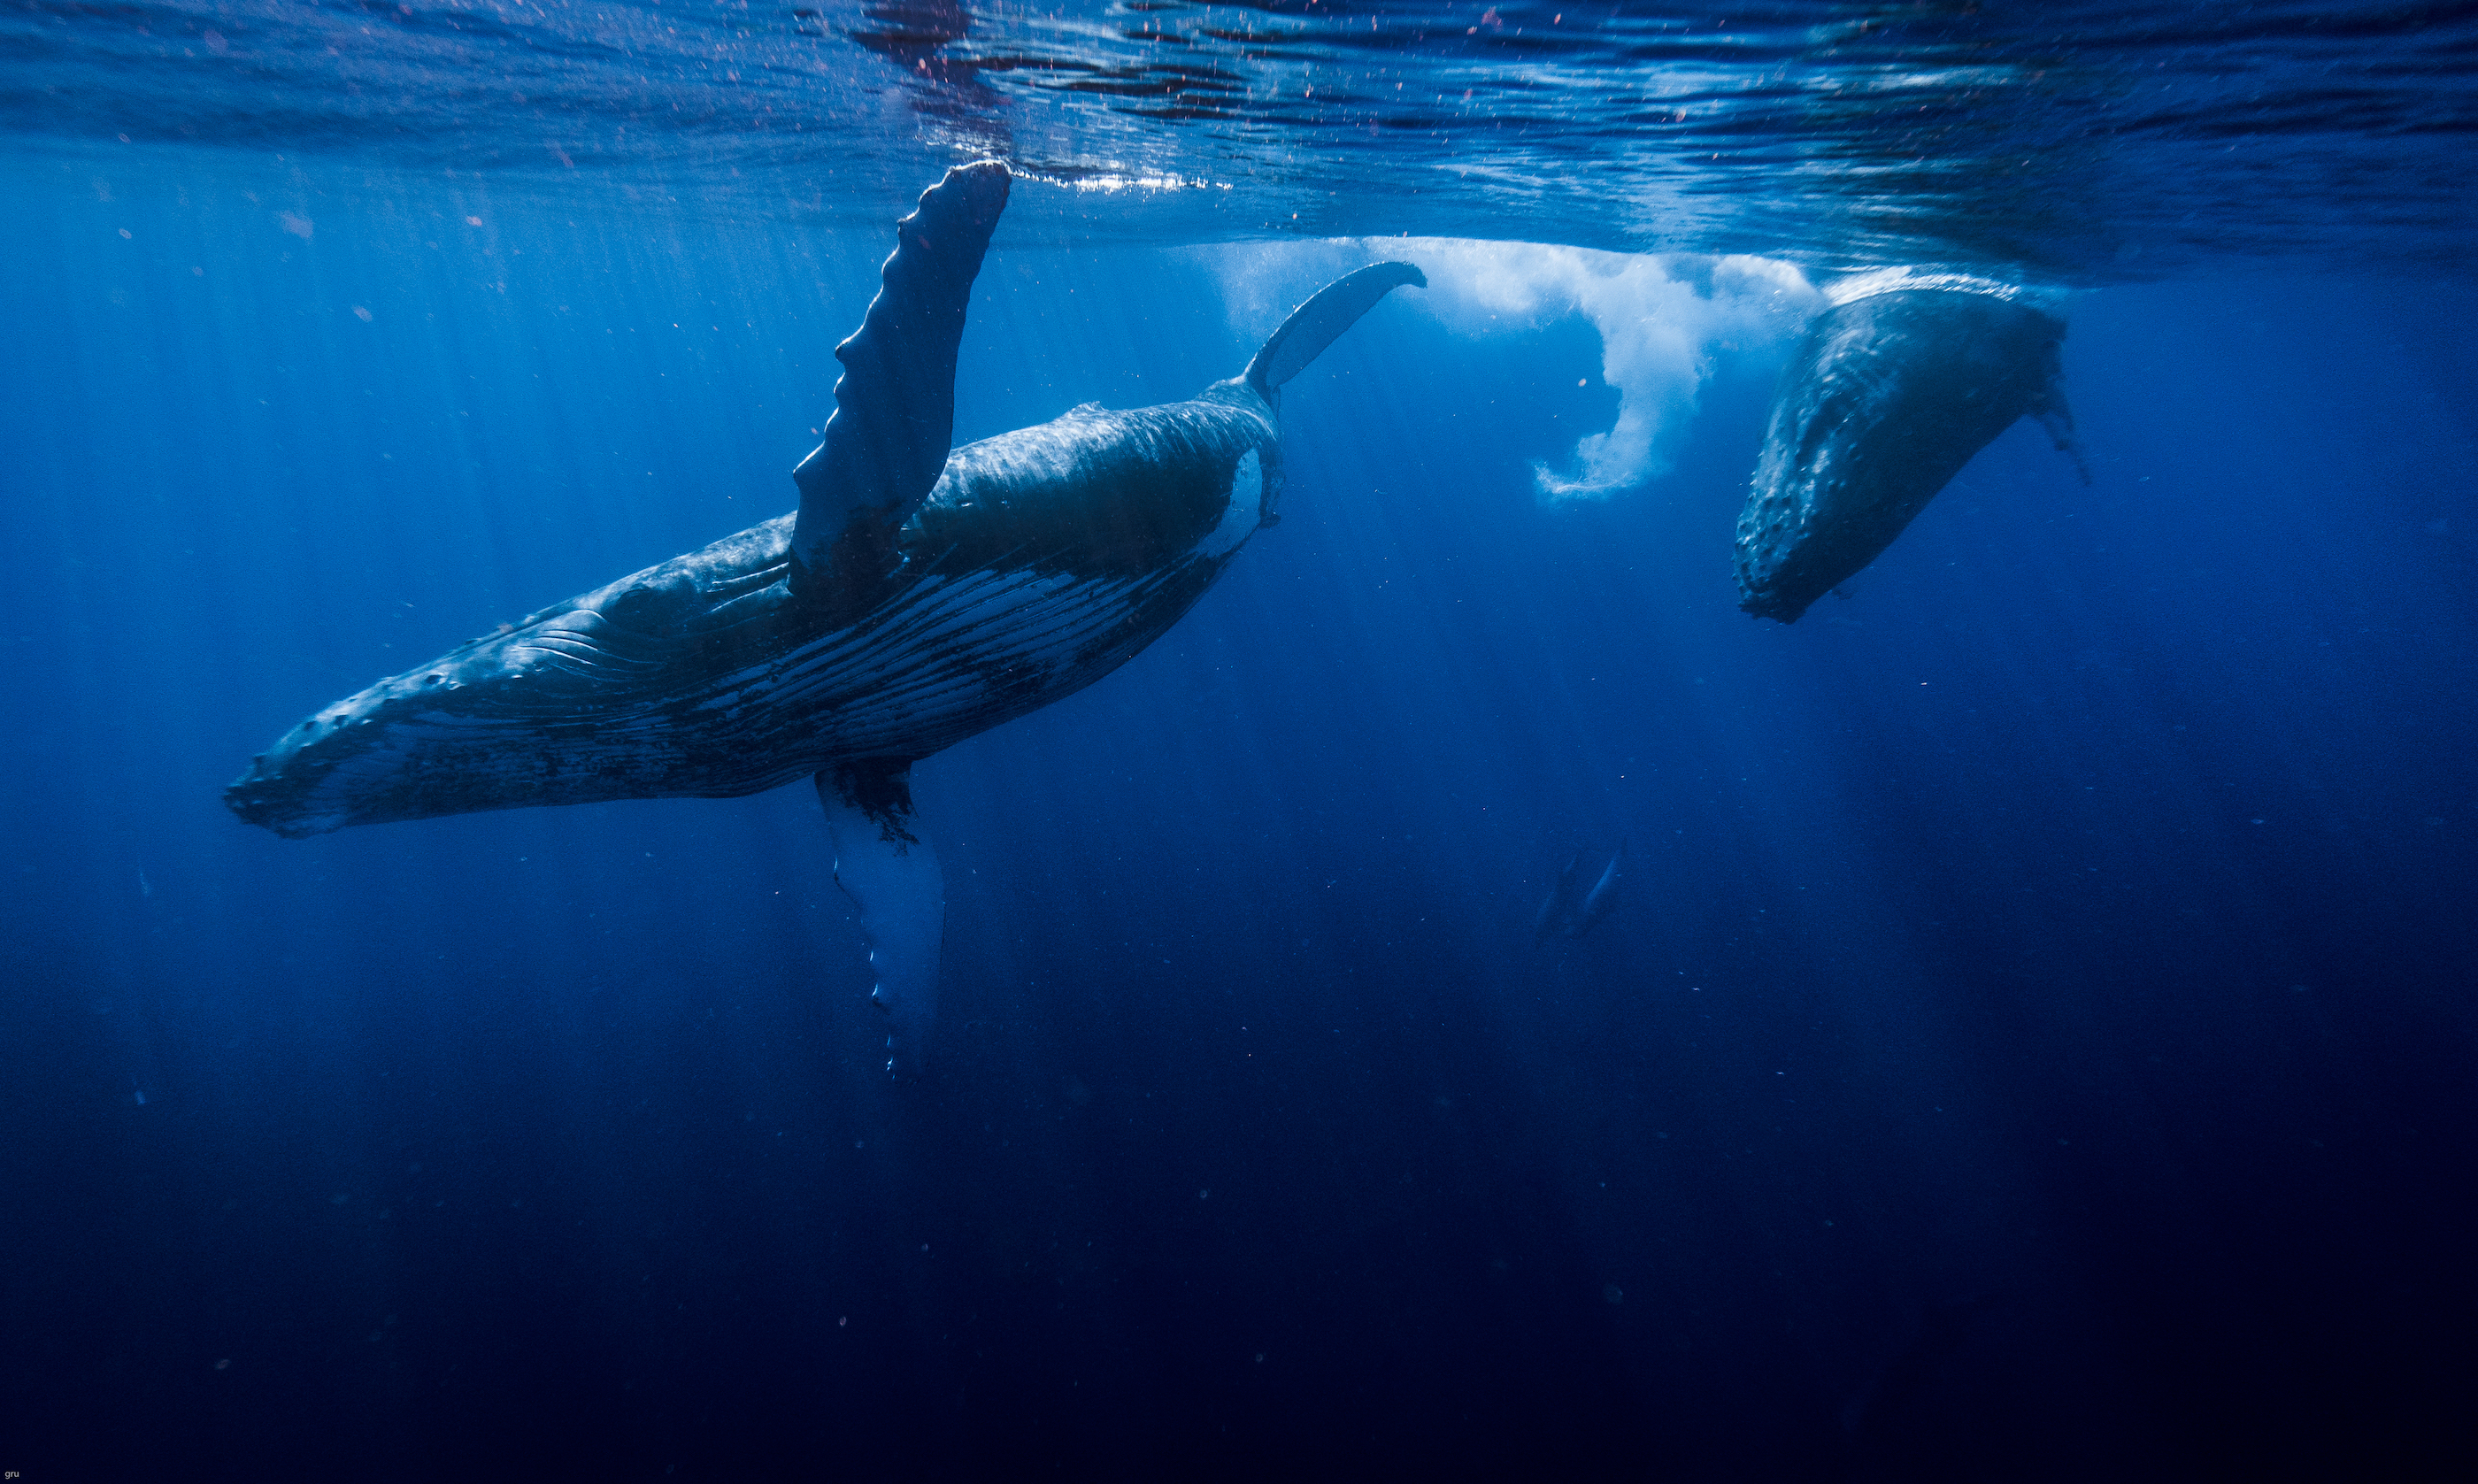 two whales at ocean surface shot from underwater